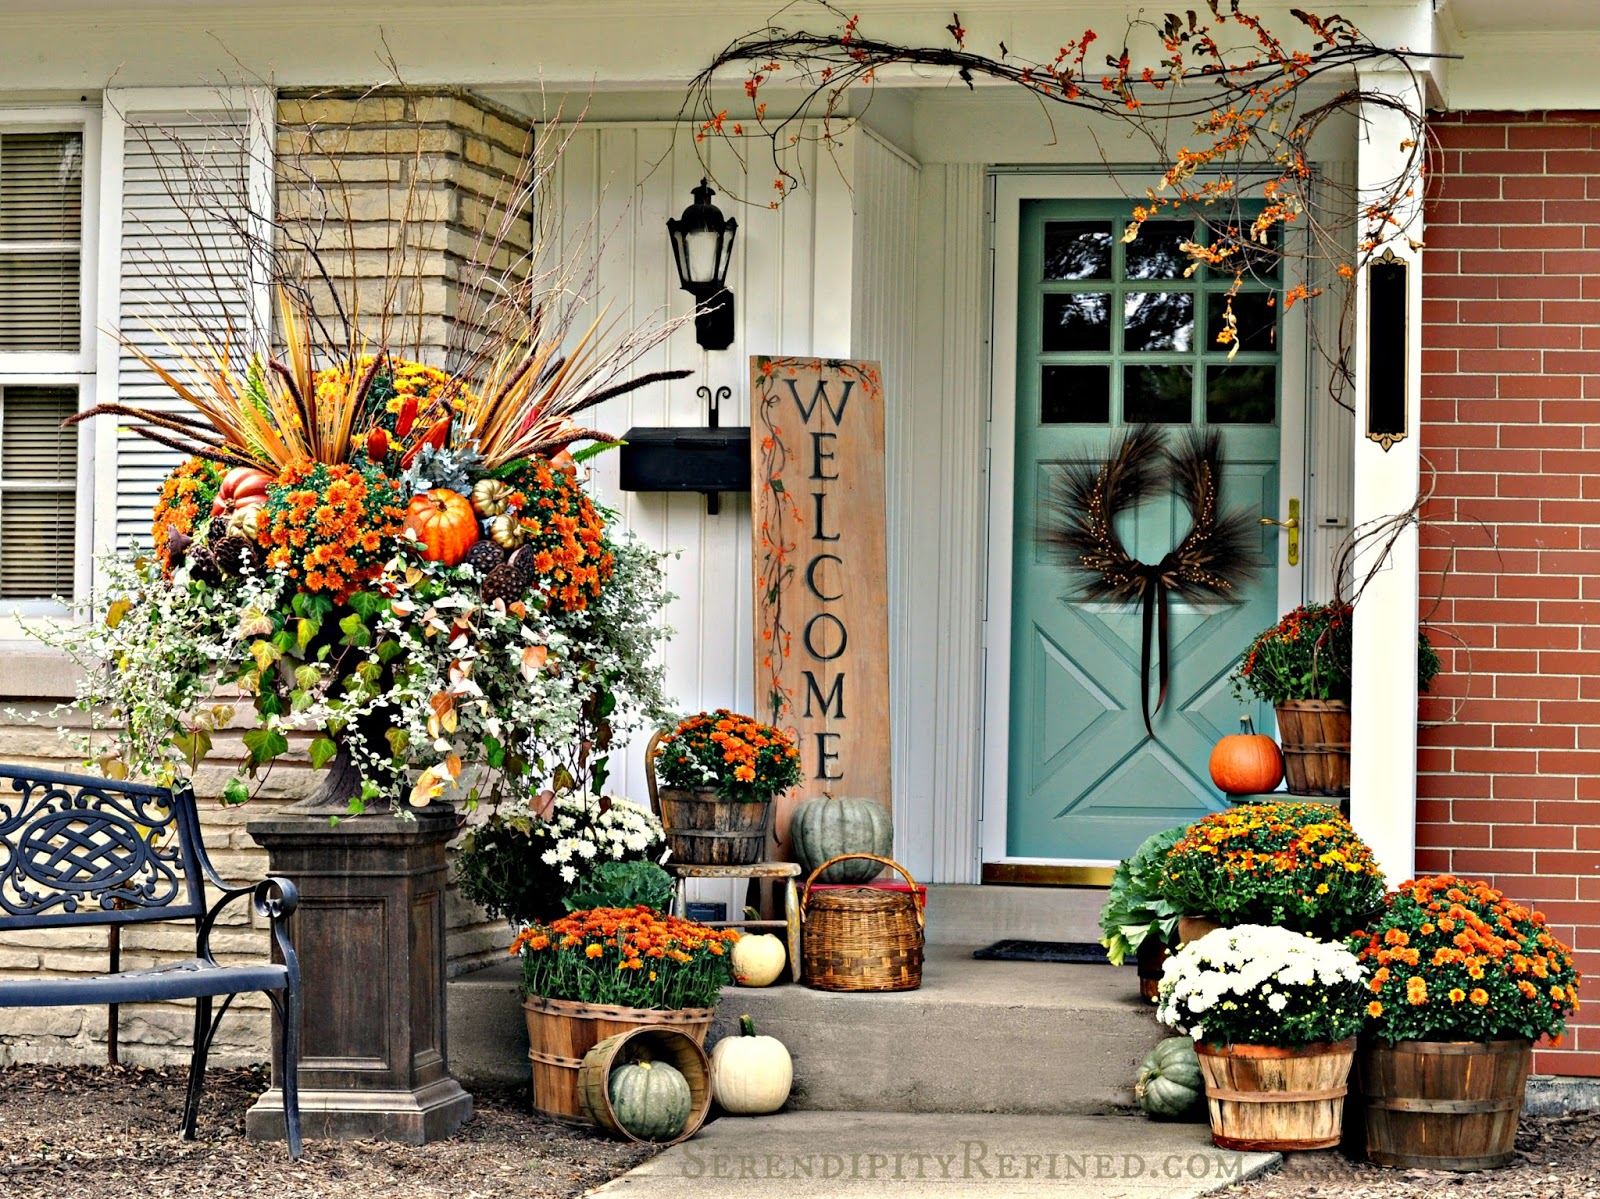 Serendipity refined blog fall harvest porch decor with for Pictures of fall decorations for outdoors